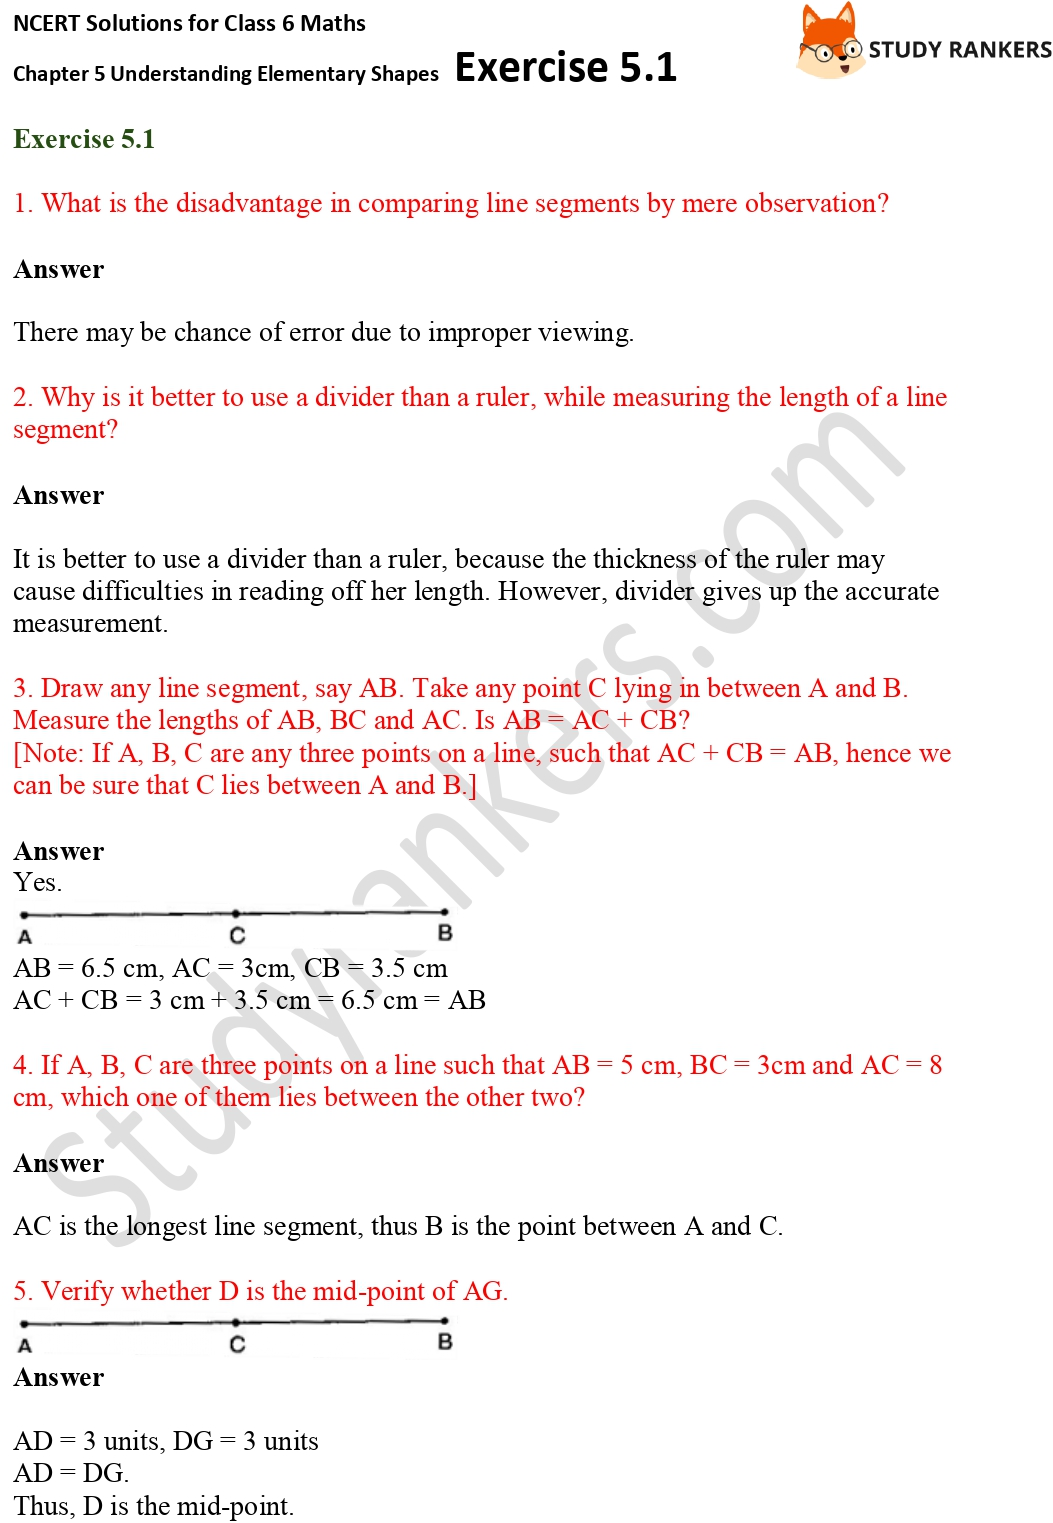 NCERT Solutions for Class 6 Maths Chapter 5 Understanding Elementary Shapes Exercise 5.1 Part 1